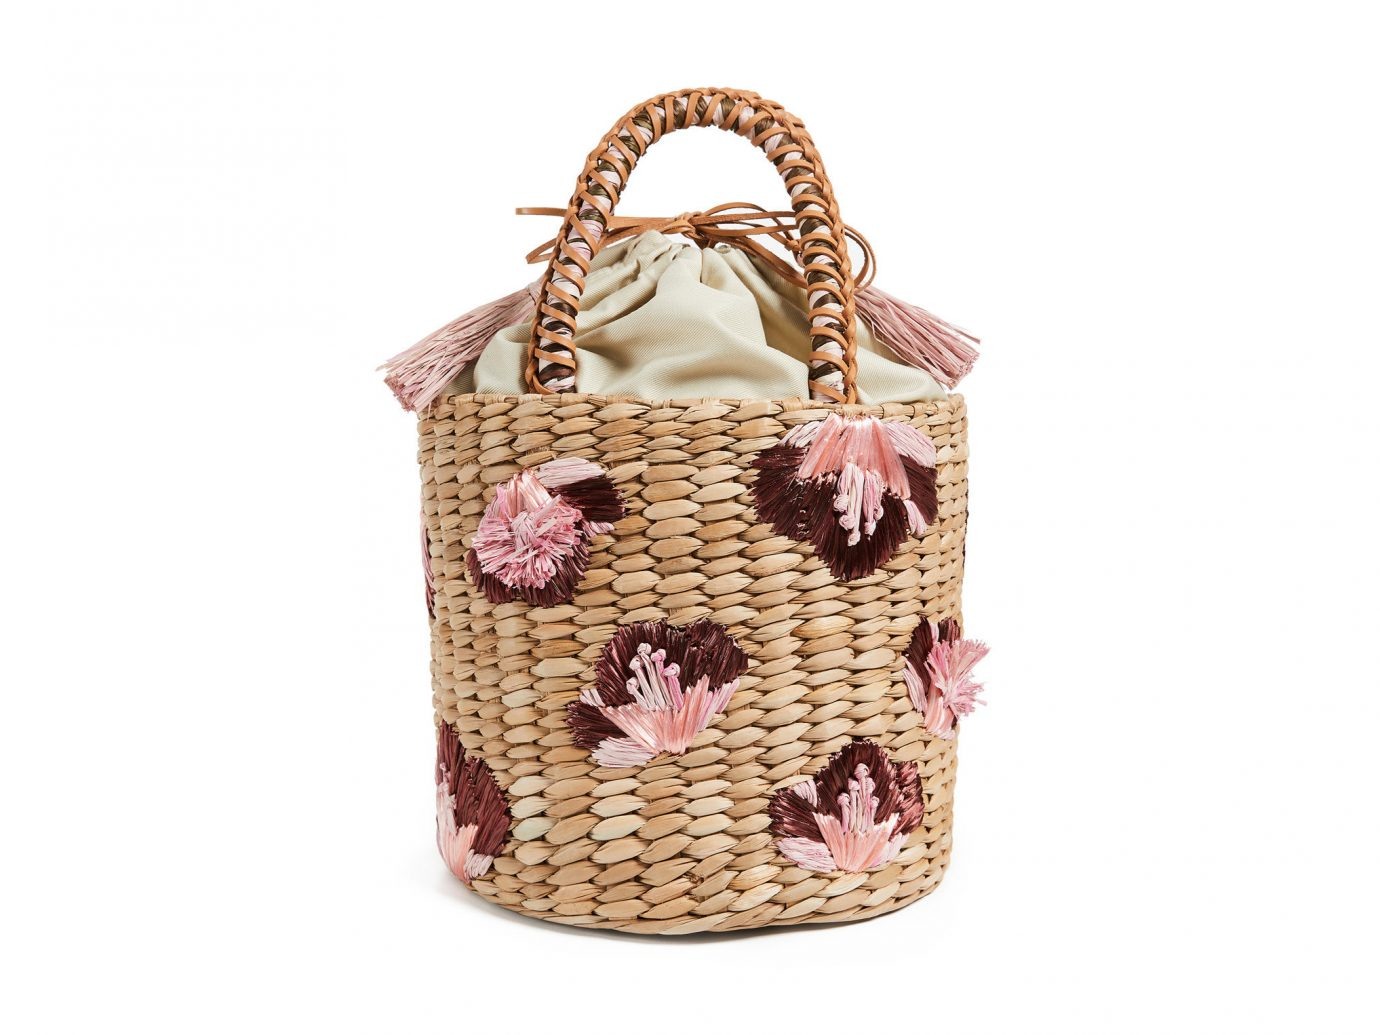 Packing Tips Style + Design Travel Shop handbag product bag accessory